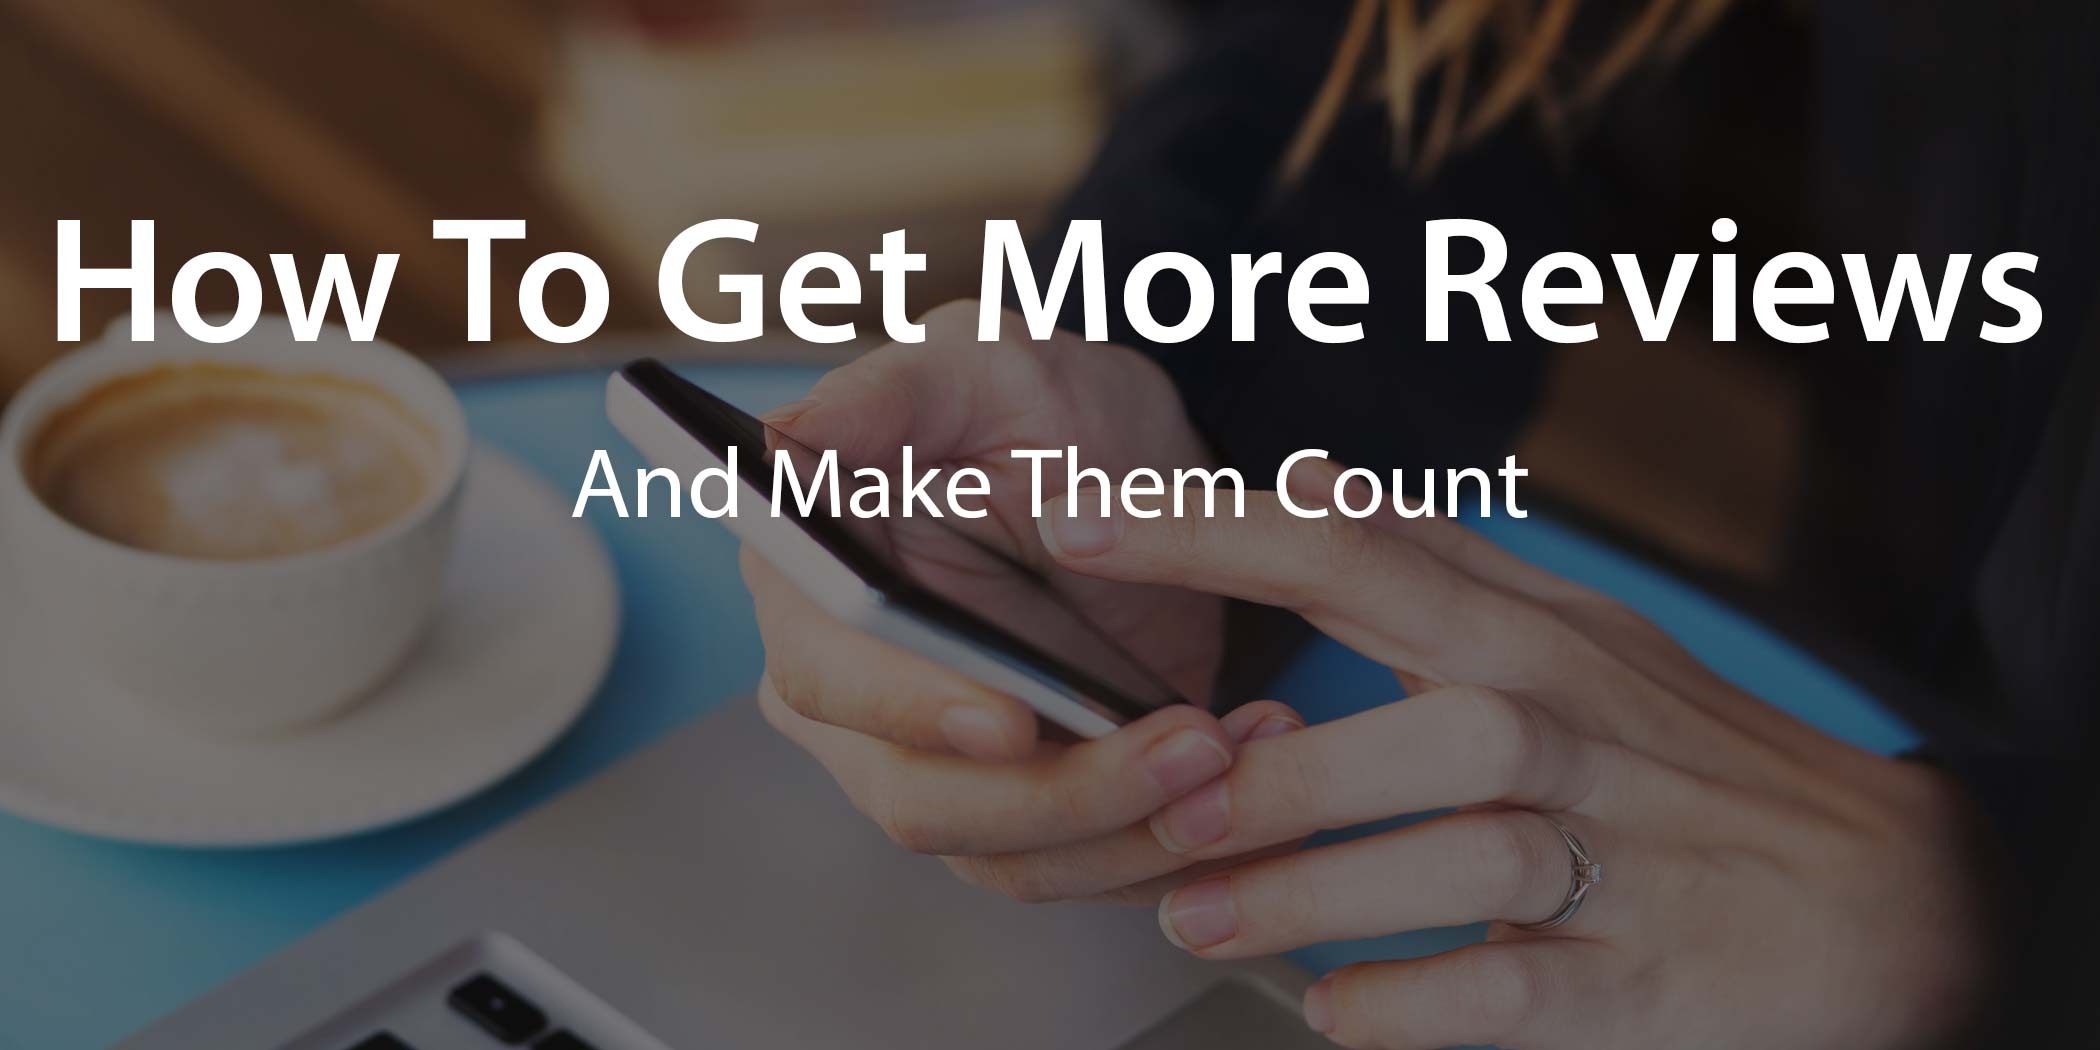 how to get more customer reviews - and make them count